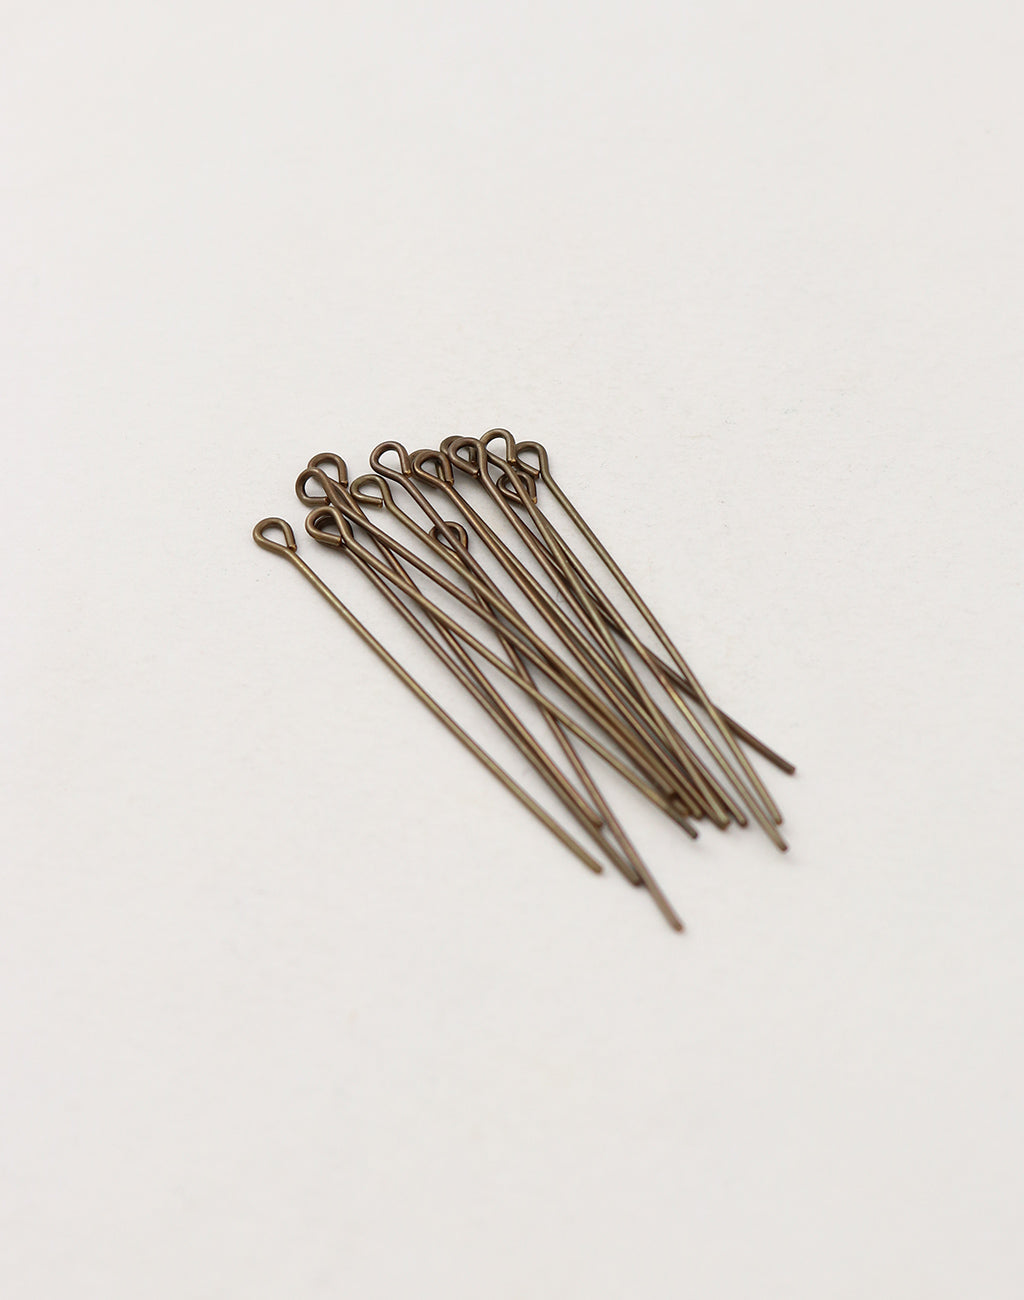 Eye Pin, 1.5in, (15pcs)